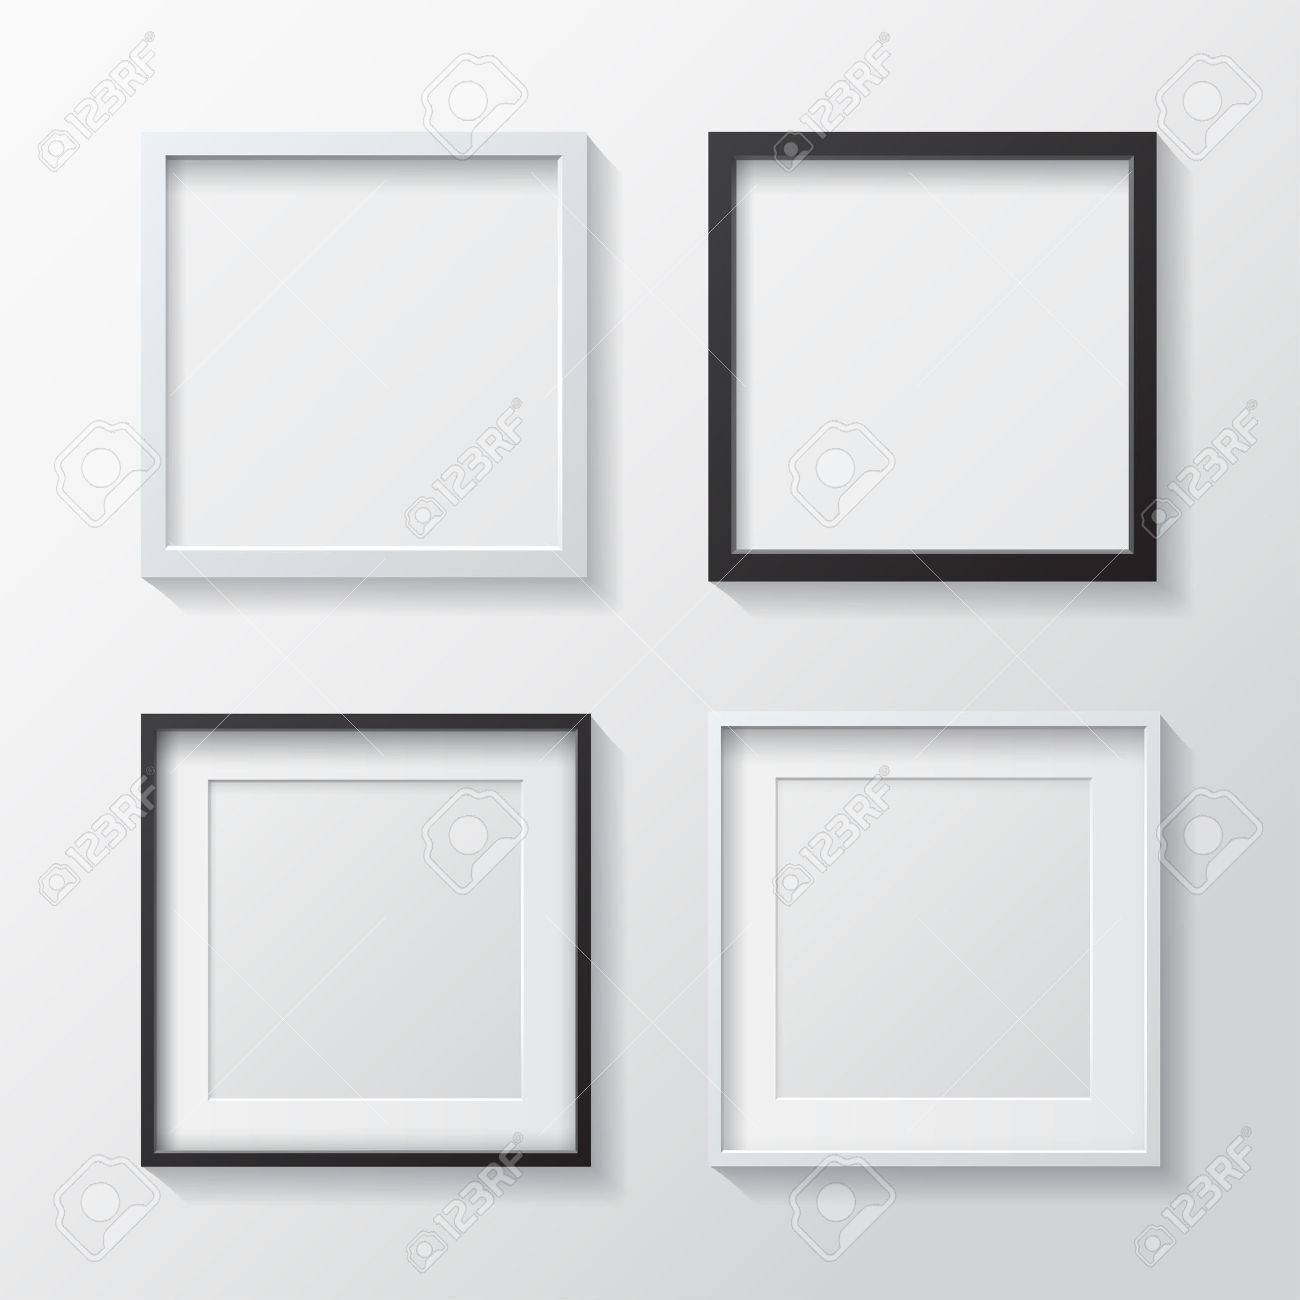 Set of White Blank Picture Frames and Black Blank Picture Frames,..